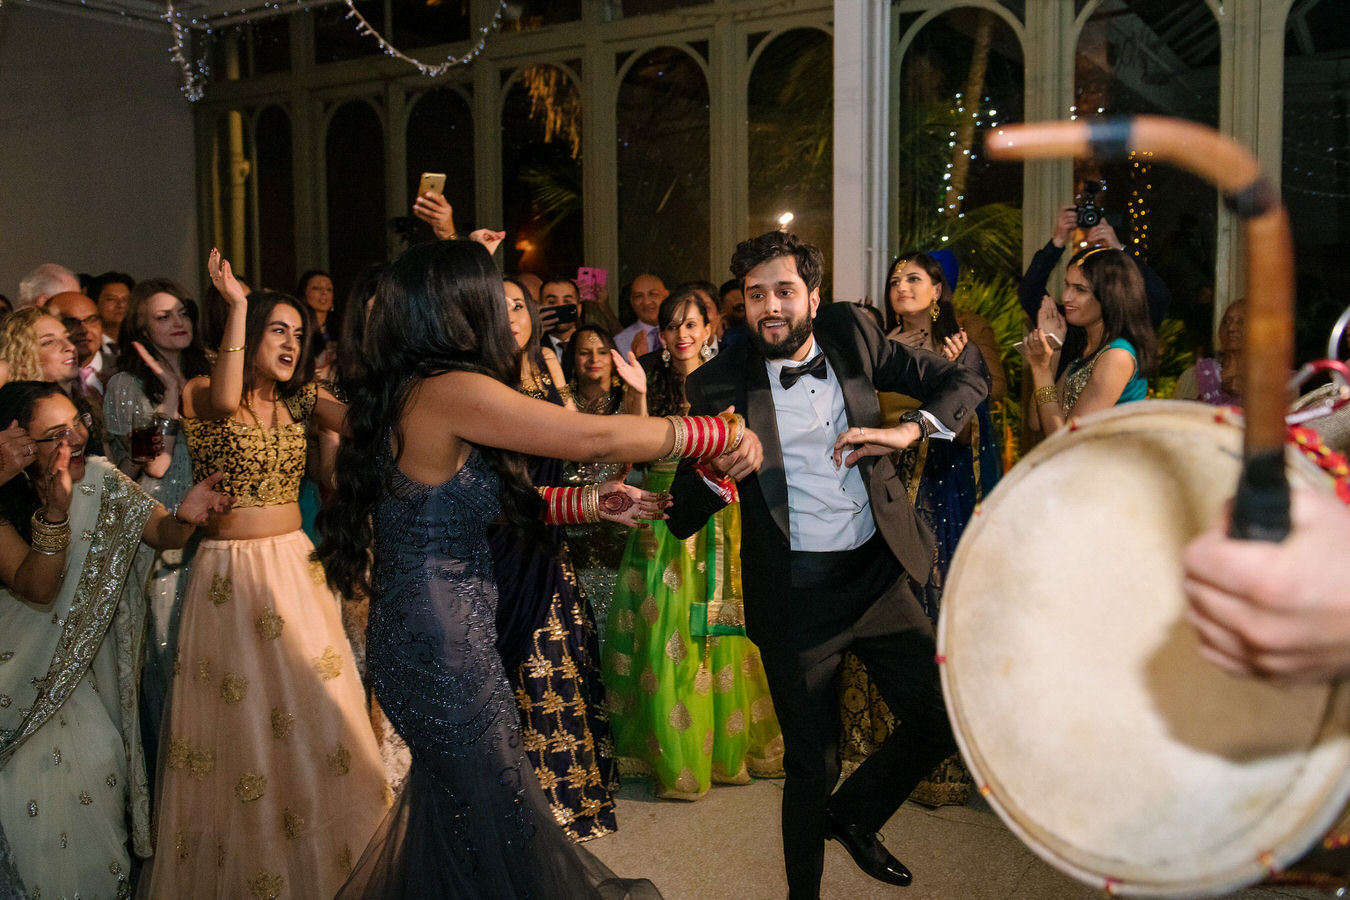 Sikh Asian wedding couple are dancing in the middle of the dancefloor and other guests applaud around. In the foreground there is a Dhol Drum.